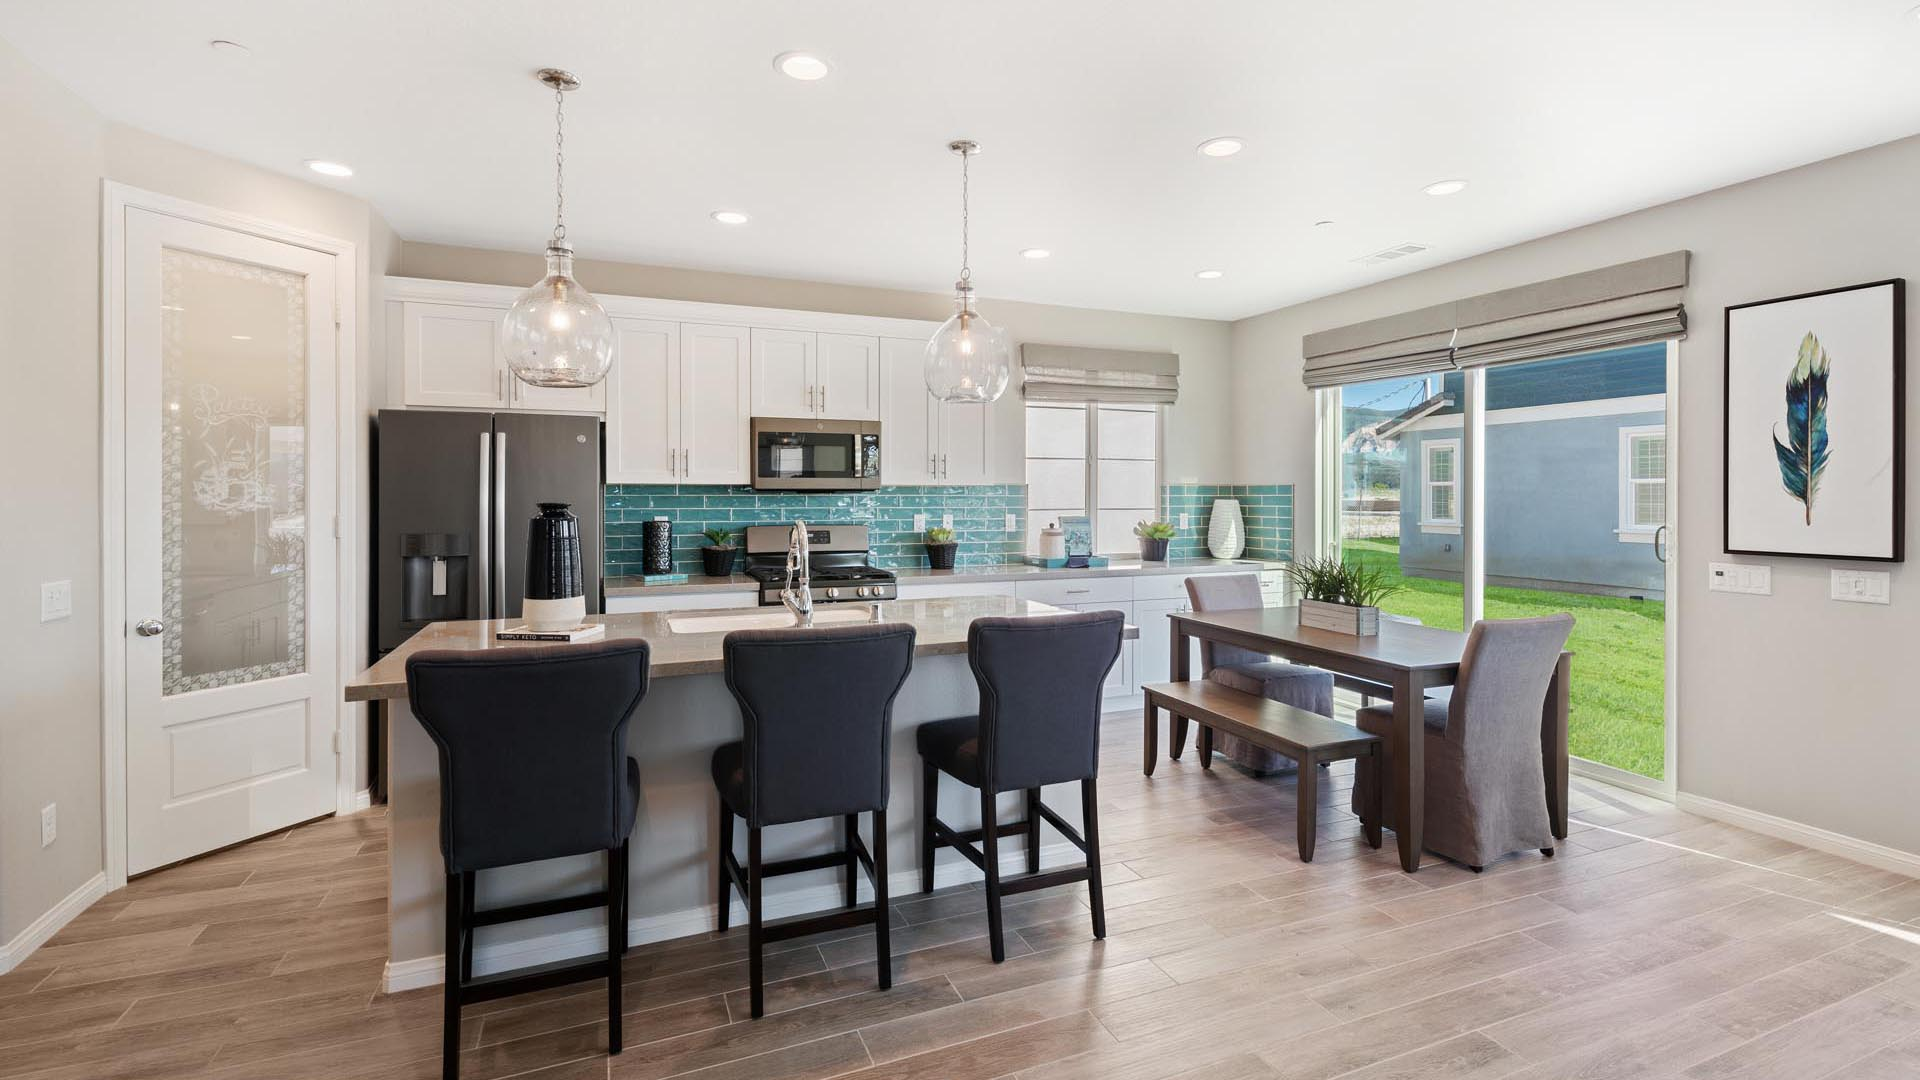 Plan 2 Kitchen to Dining Area